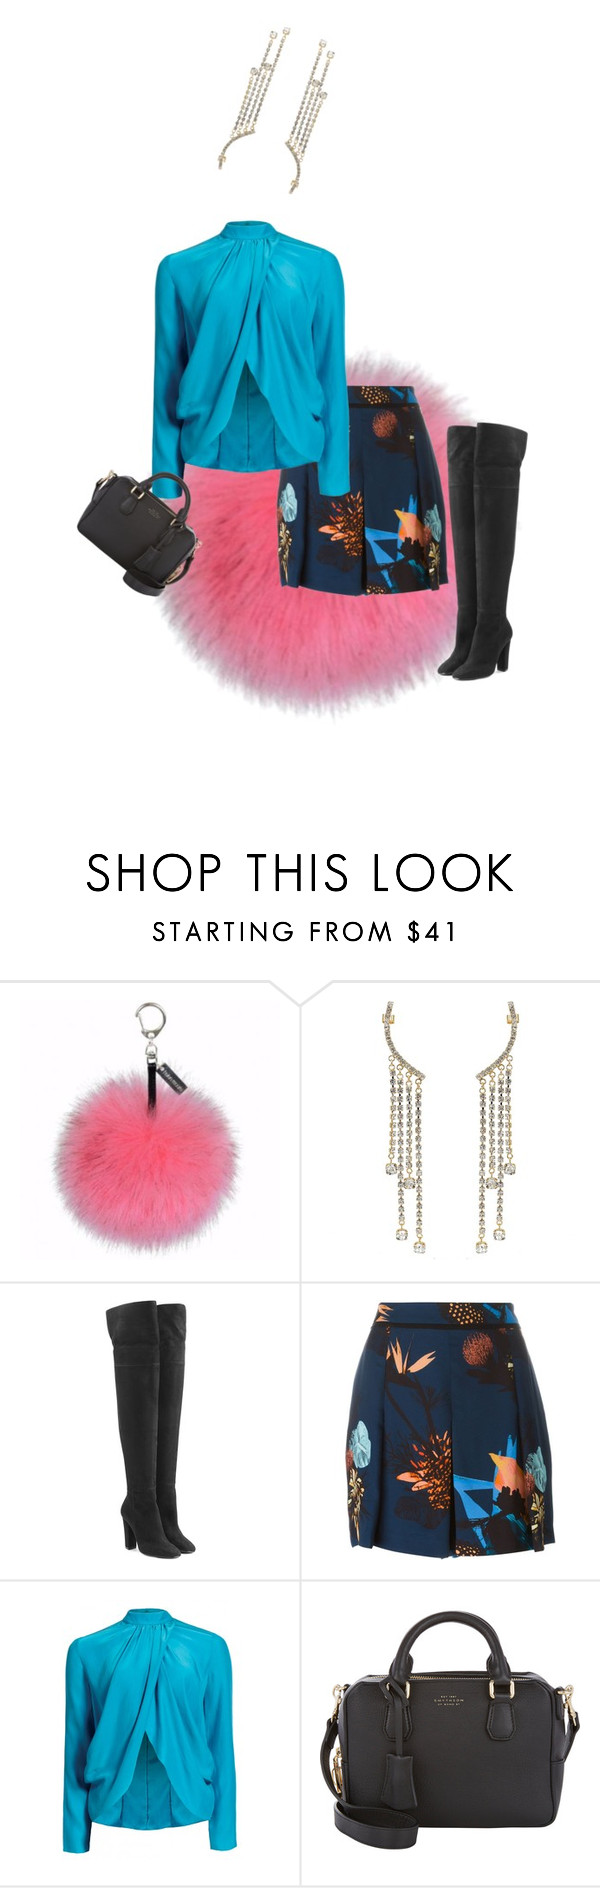 """""""Psyched and I love it."""" by kohlanndesigns ❤ liked on Polyvore featuring Helen Moore, Giuseppe Zanotti, Proenza Schouler, Matthew Williamson, Smythson, women's clothing, women's fashion, women, female and woman"""